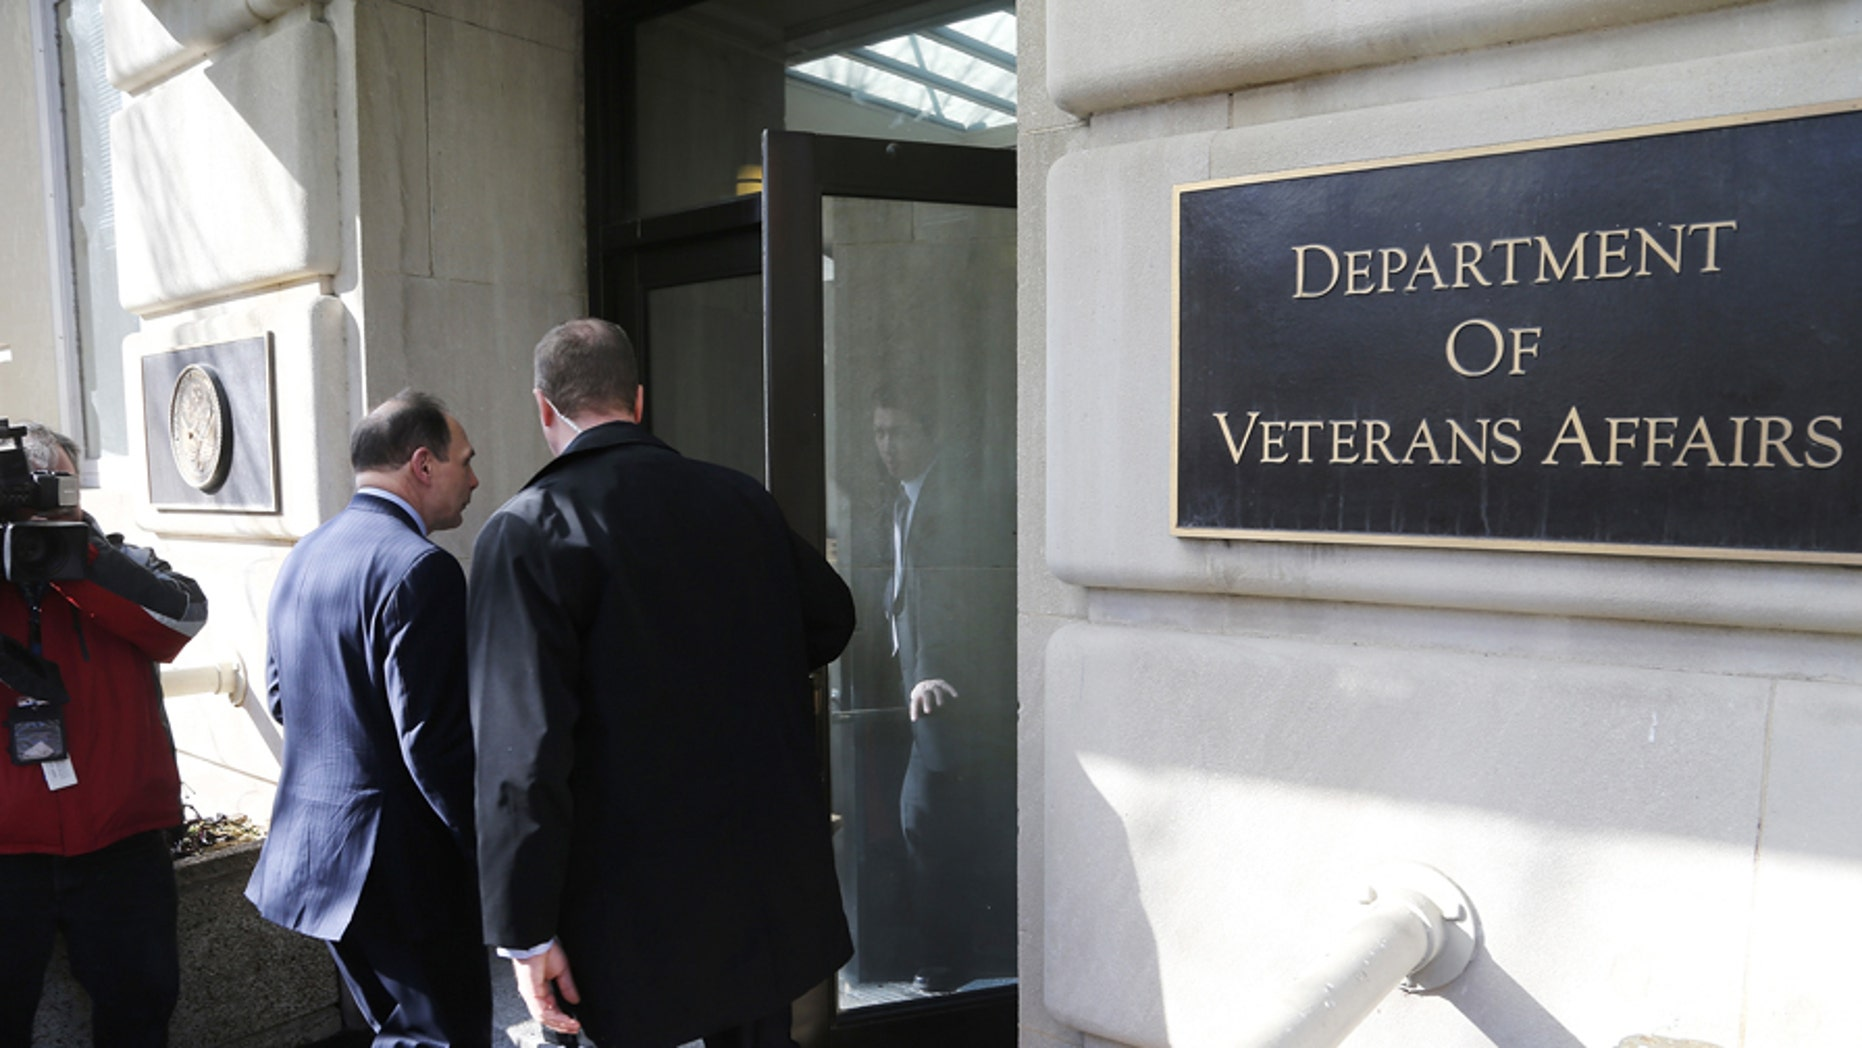 U.S. Department of Veterans Affairs Secretary Robert McDonald (L) departs into the building after delivering an apology, for recent misstatements about his military record, to reporters outside VA headquarters in Washington, February 24, 2015.  REUTERS/Jonathan Ernst    (UNITED STATES - Tags: POLITICS MILITARY) - GM1EB2P0CWL01